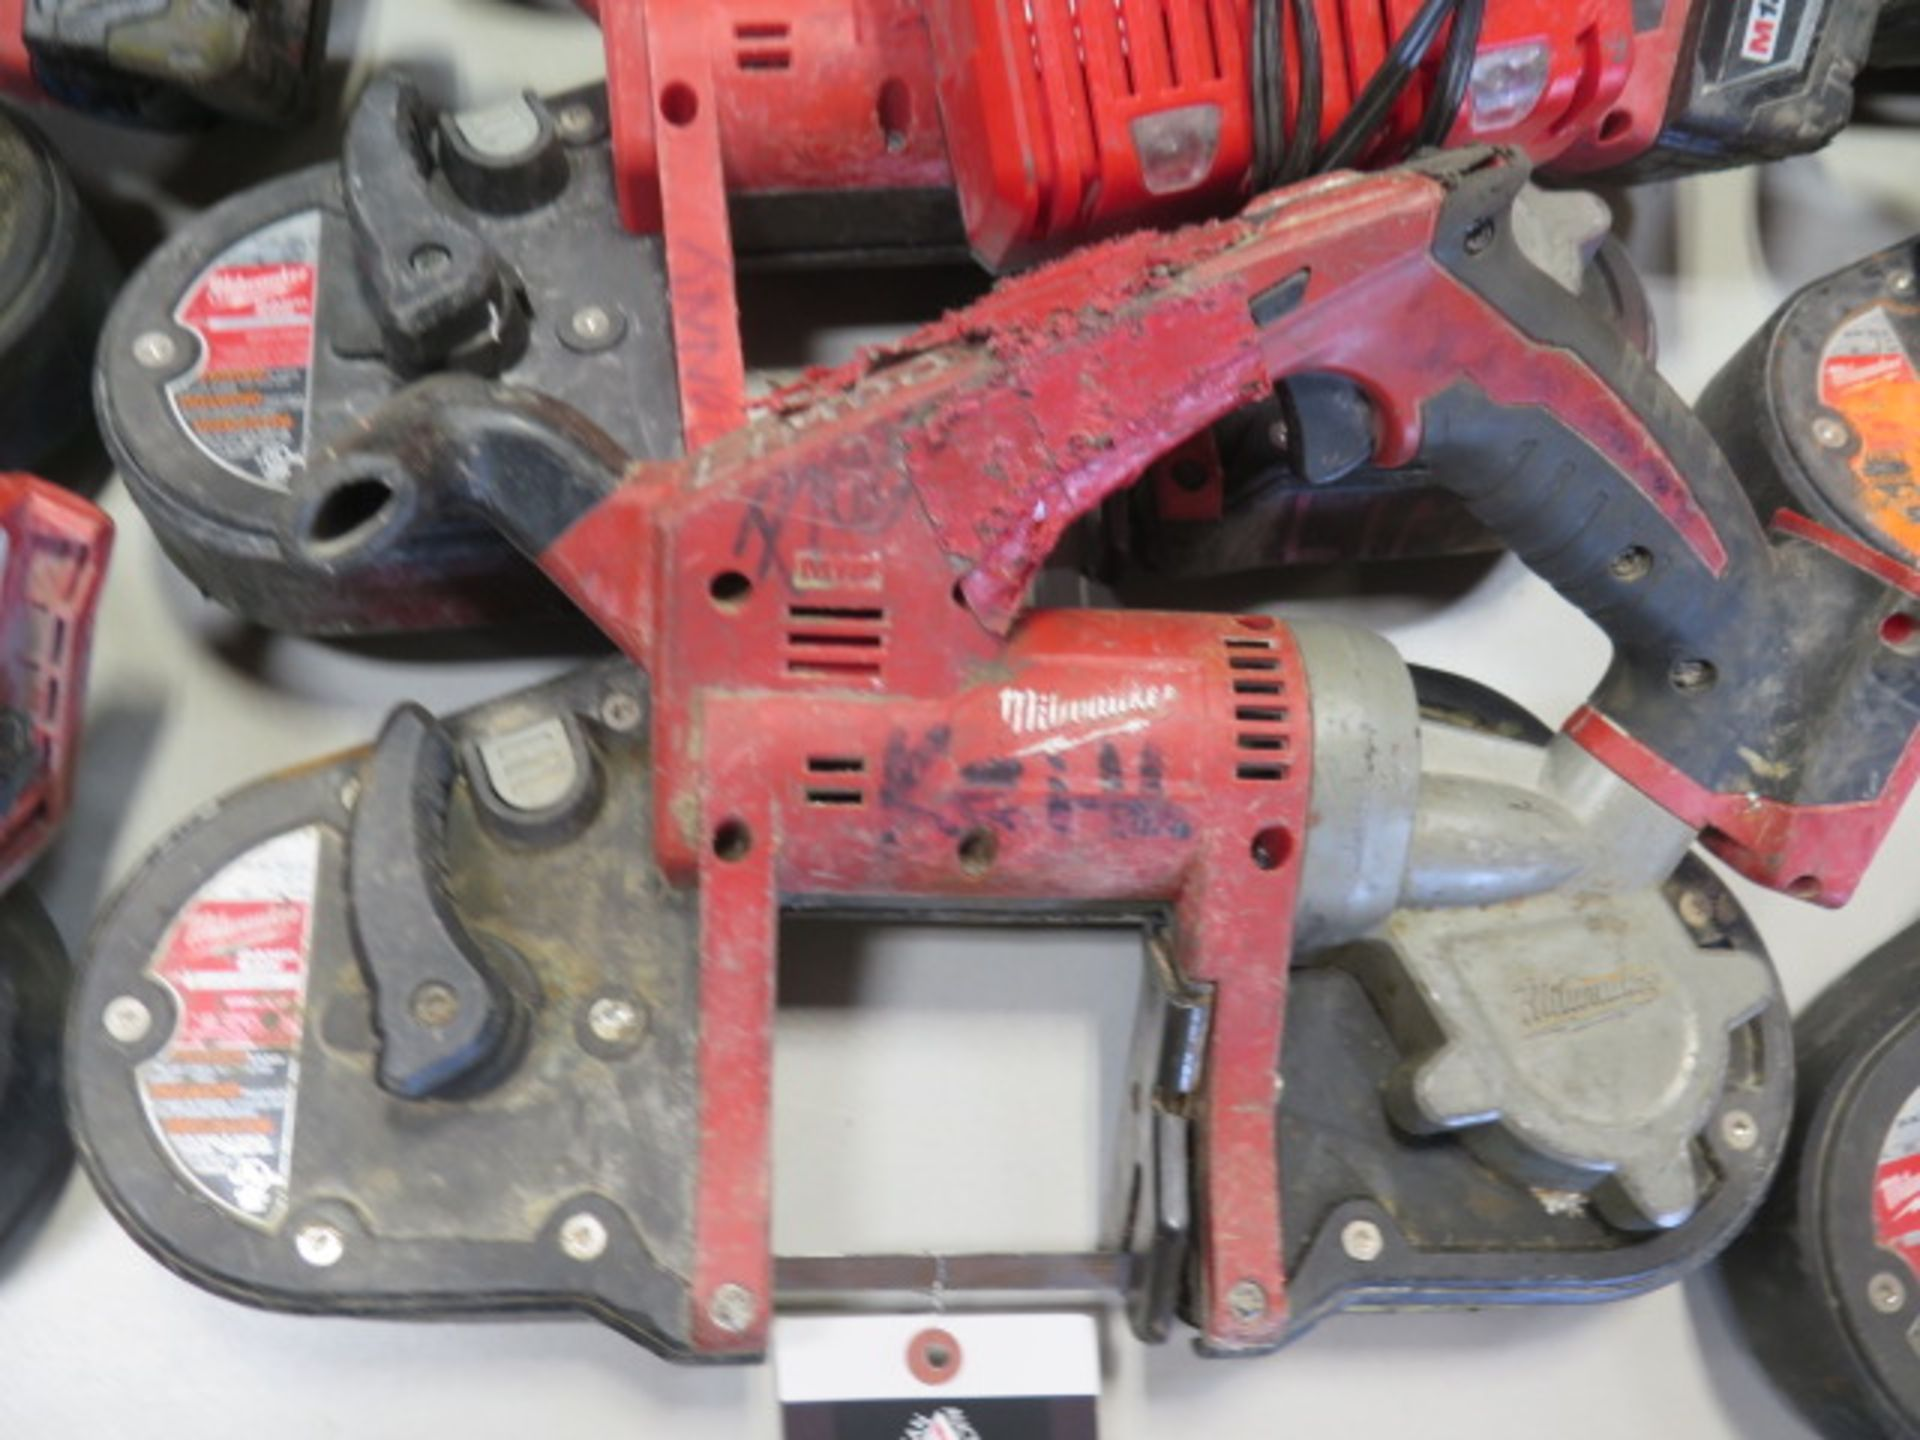 Milwaukee 18 Volt Compact Portable Band Saws (4) (SOLD AS-IS - NO WARRANTY) - Image 4 of 7